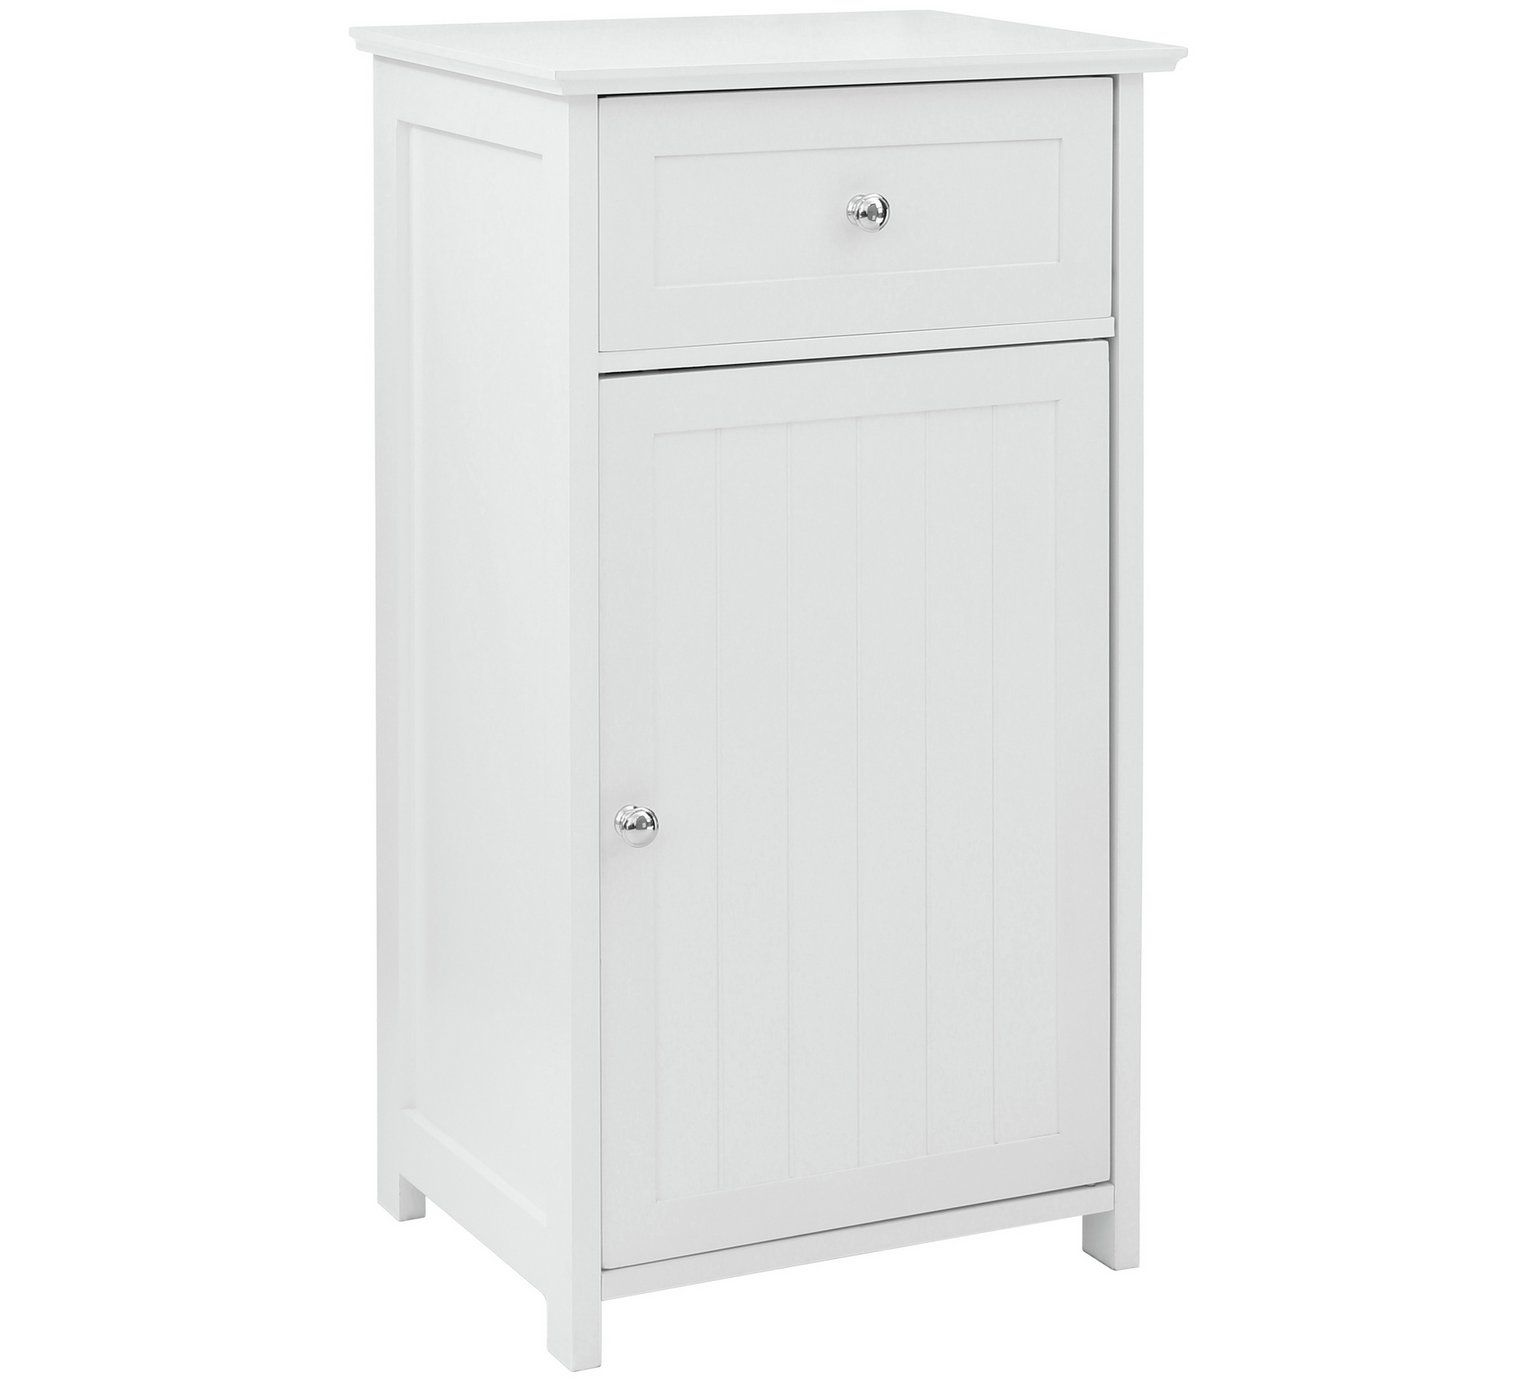 Buy premier housewares portland wooden cabinet with shelfwhite at